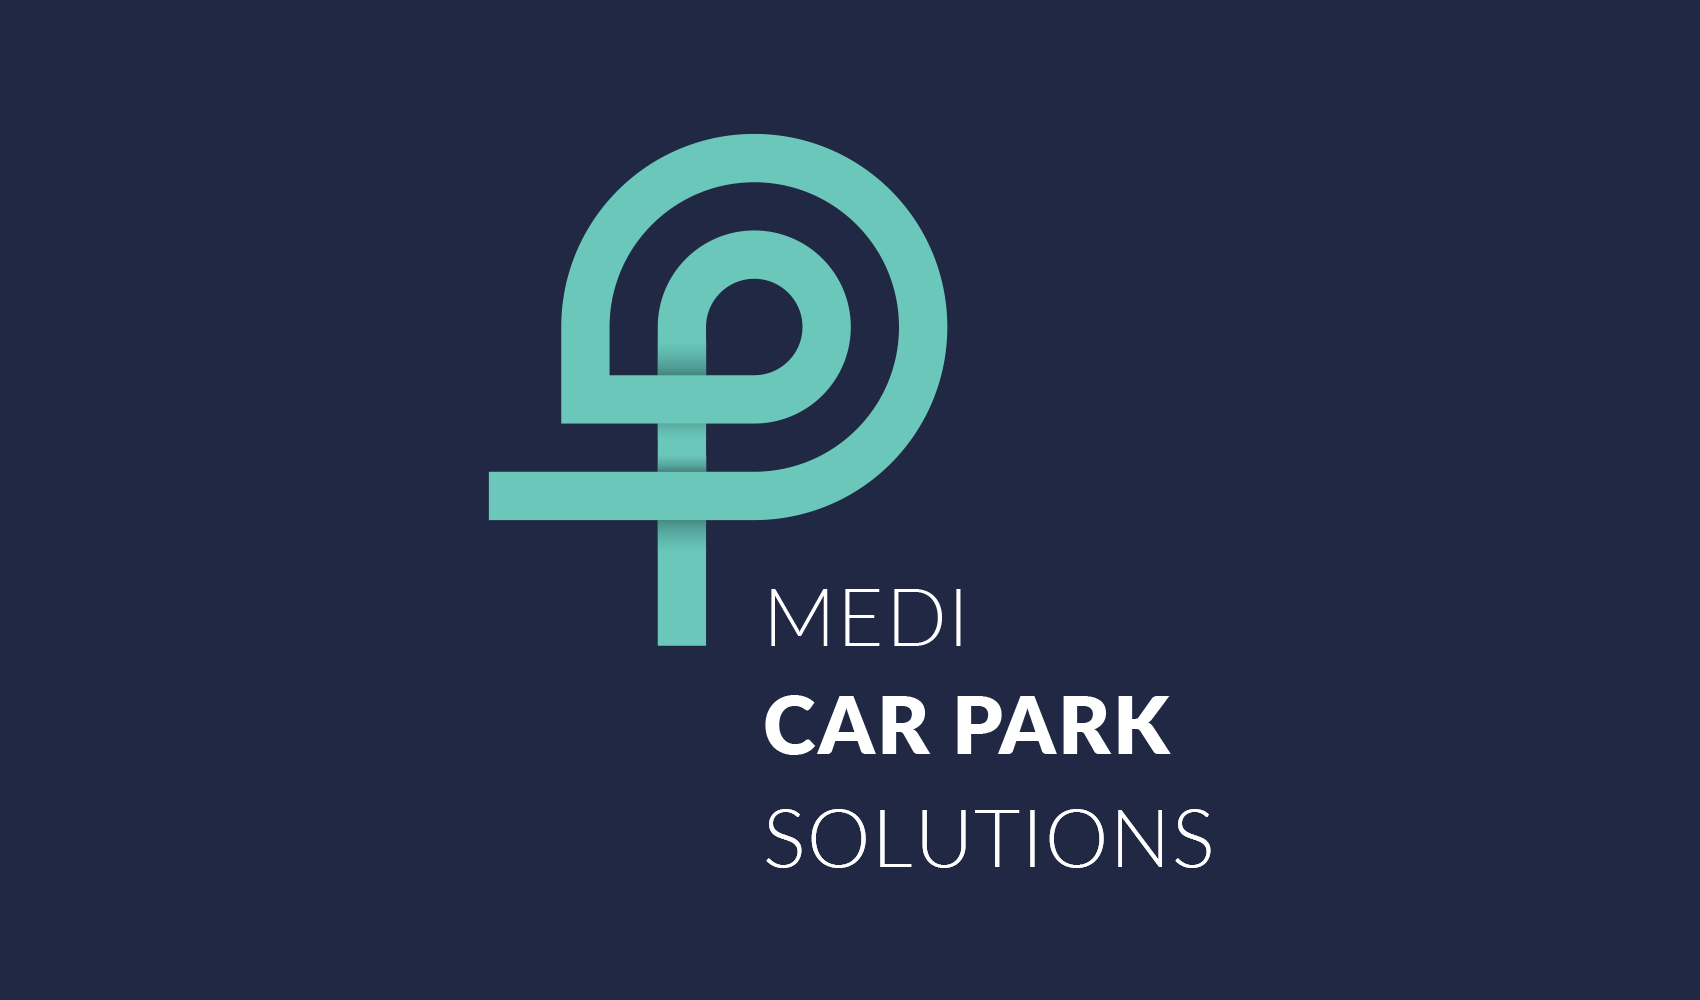 Medi Car Park Solutions